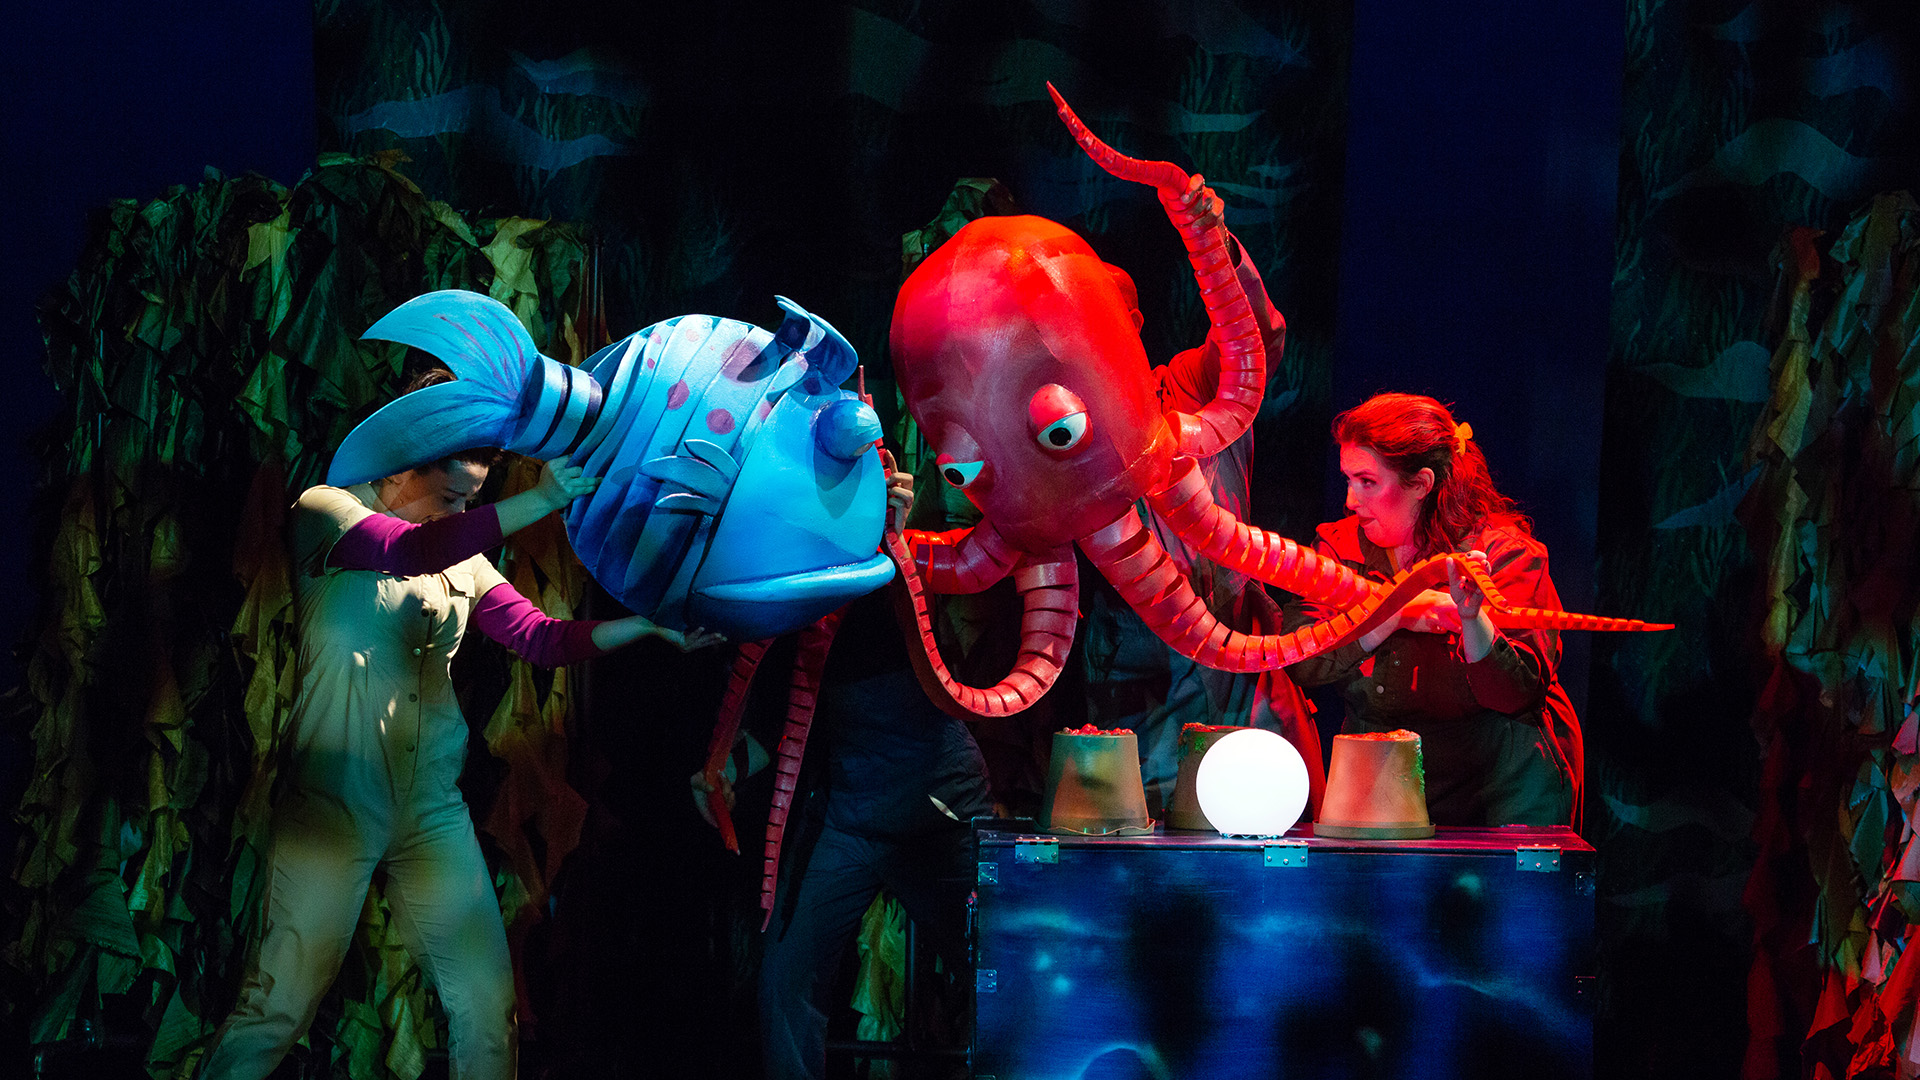 Fish puppets go to head to head with humans steering them.